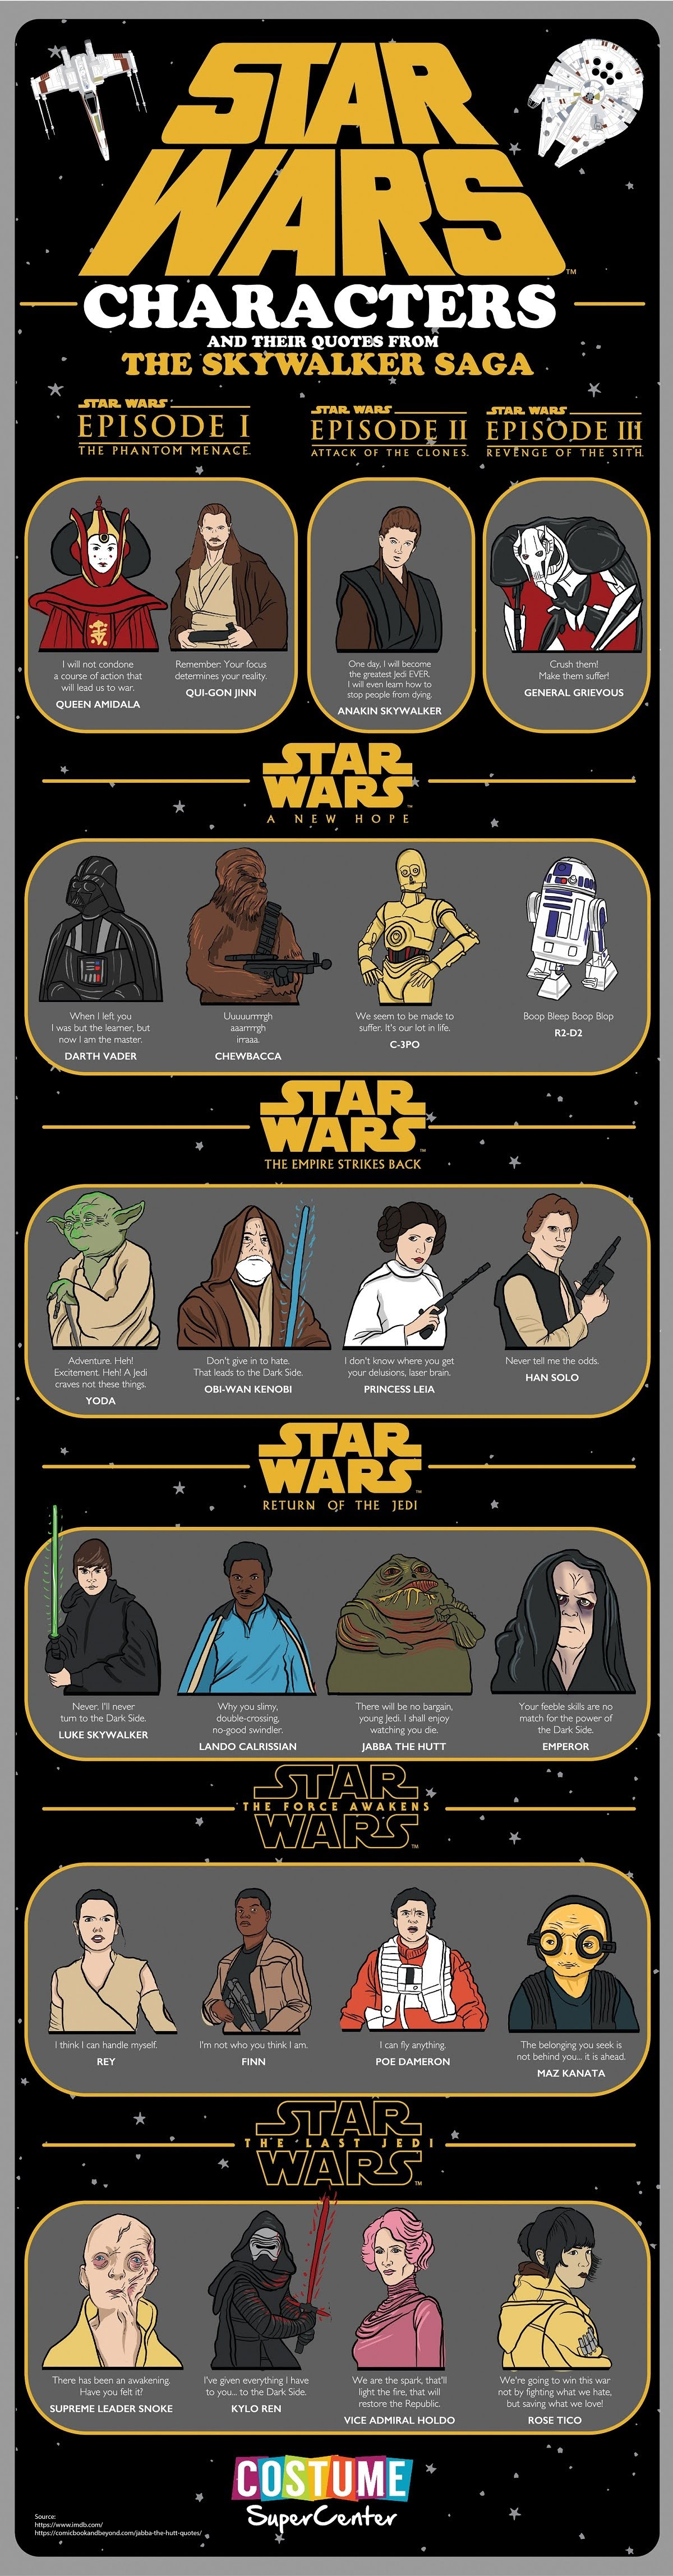 star-wars-characters-and-their-quotes-from-the-skywalker-saga-infographic